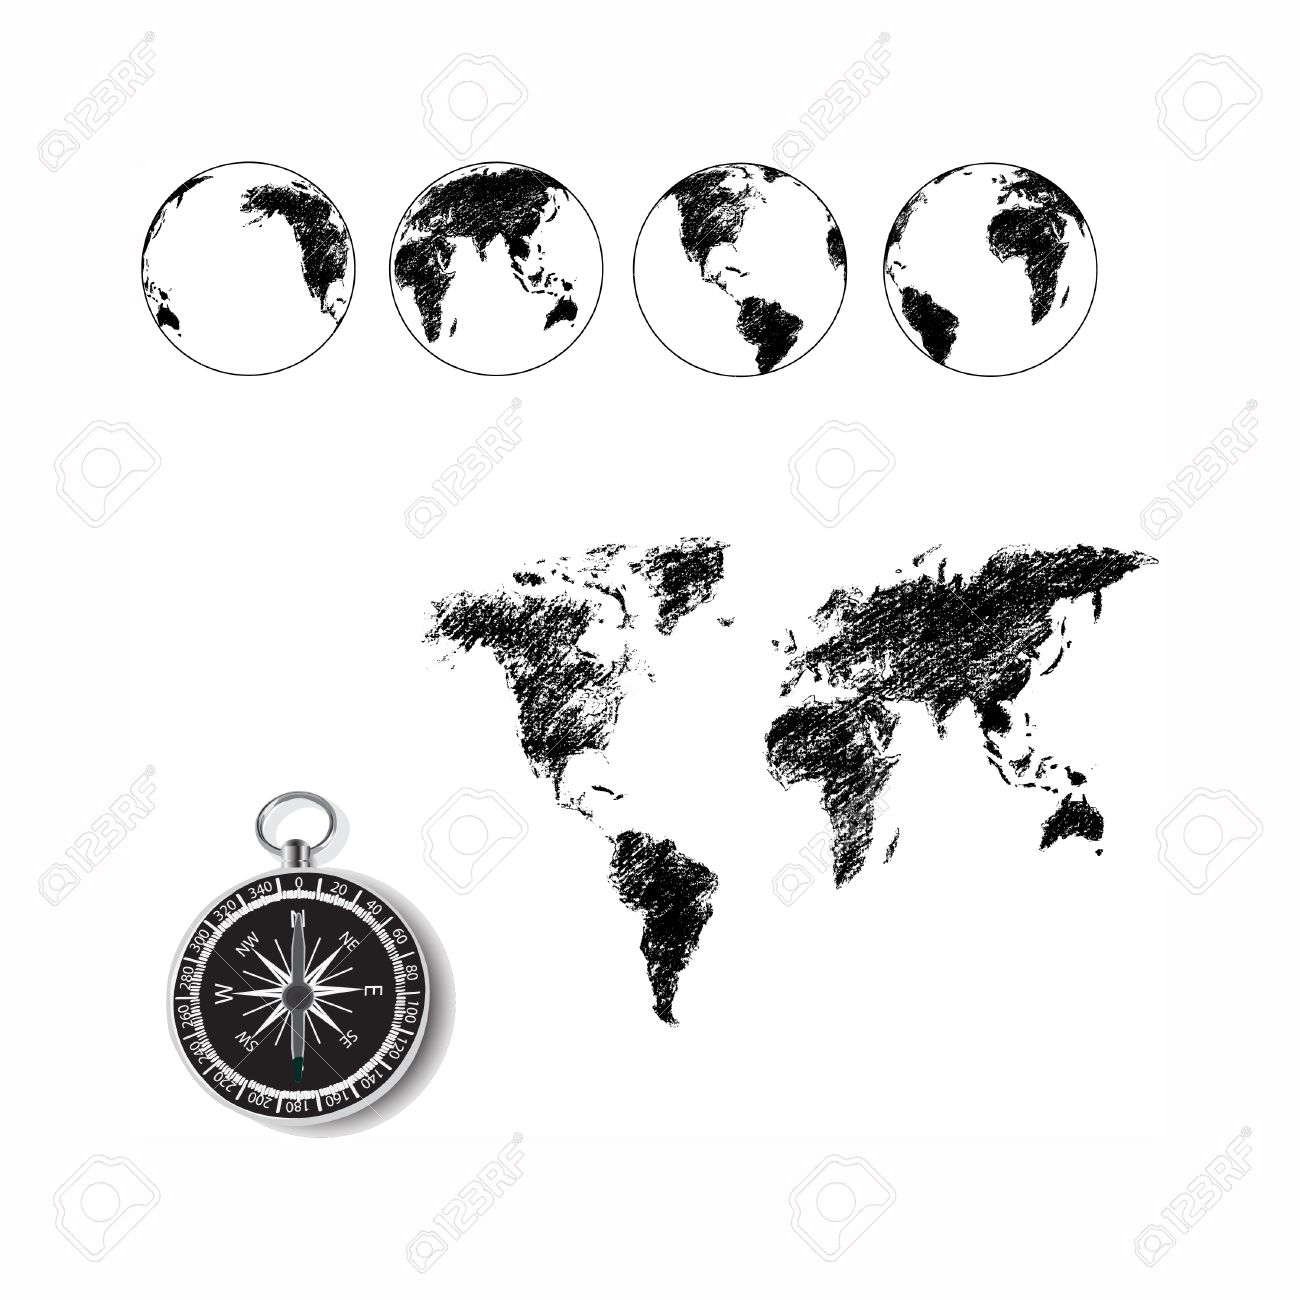 World map globe drawing with old fashion compass stock photo stock photo world map globe drawing with old fashion compass gumiabroncs Images